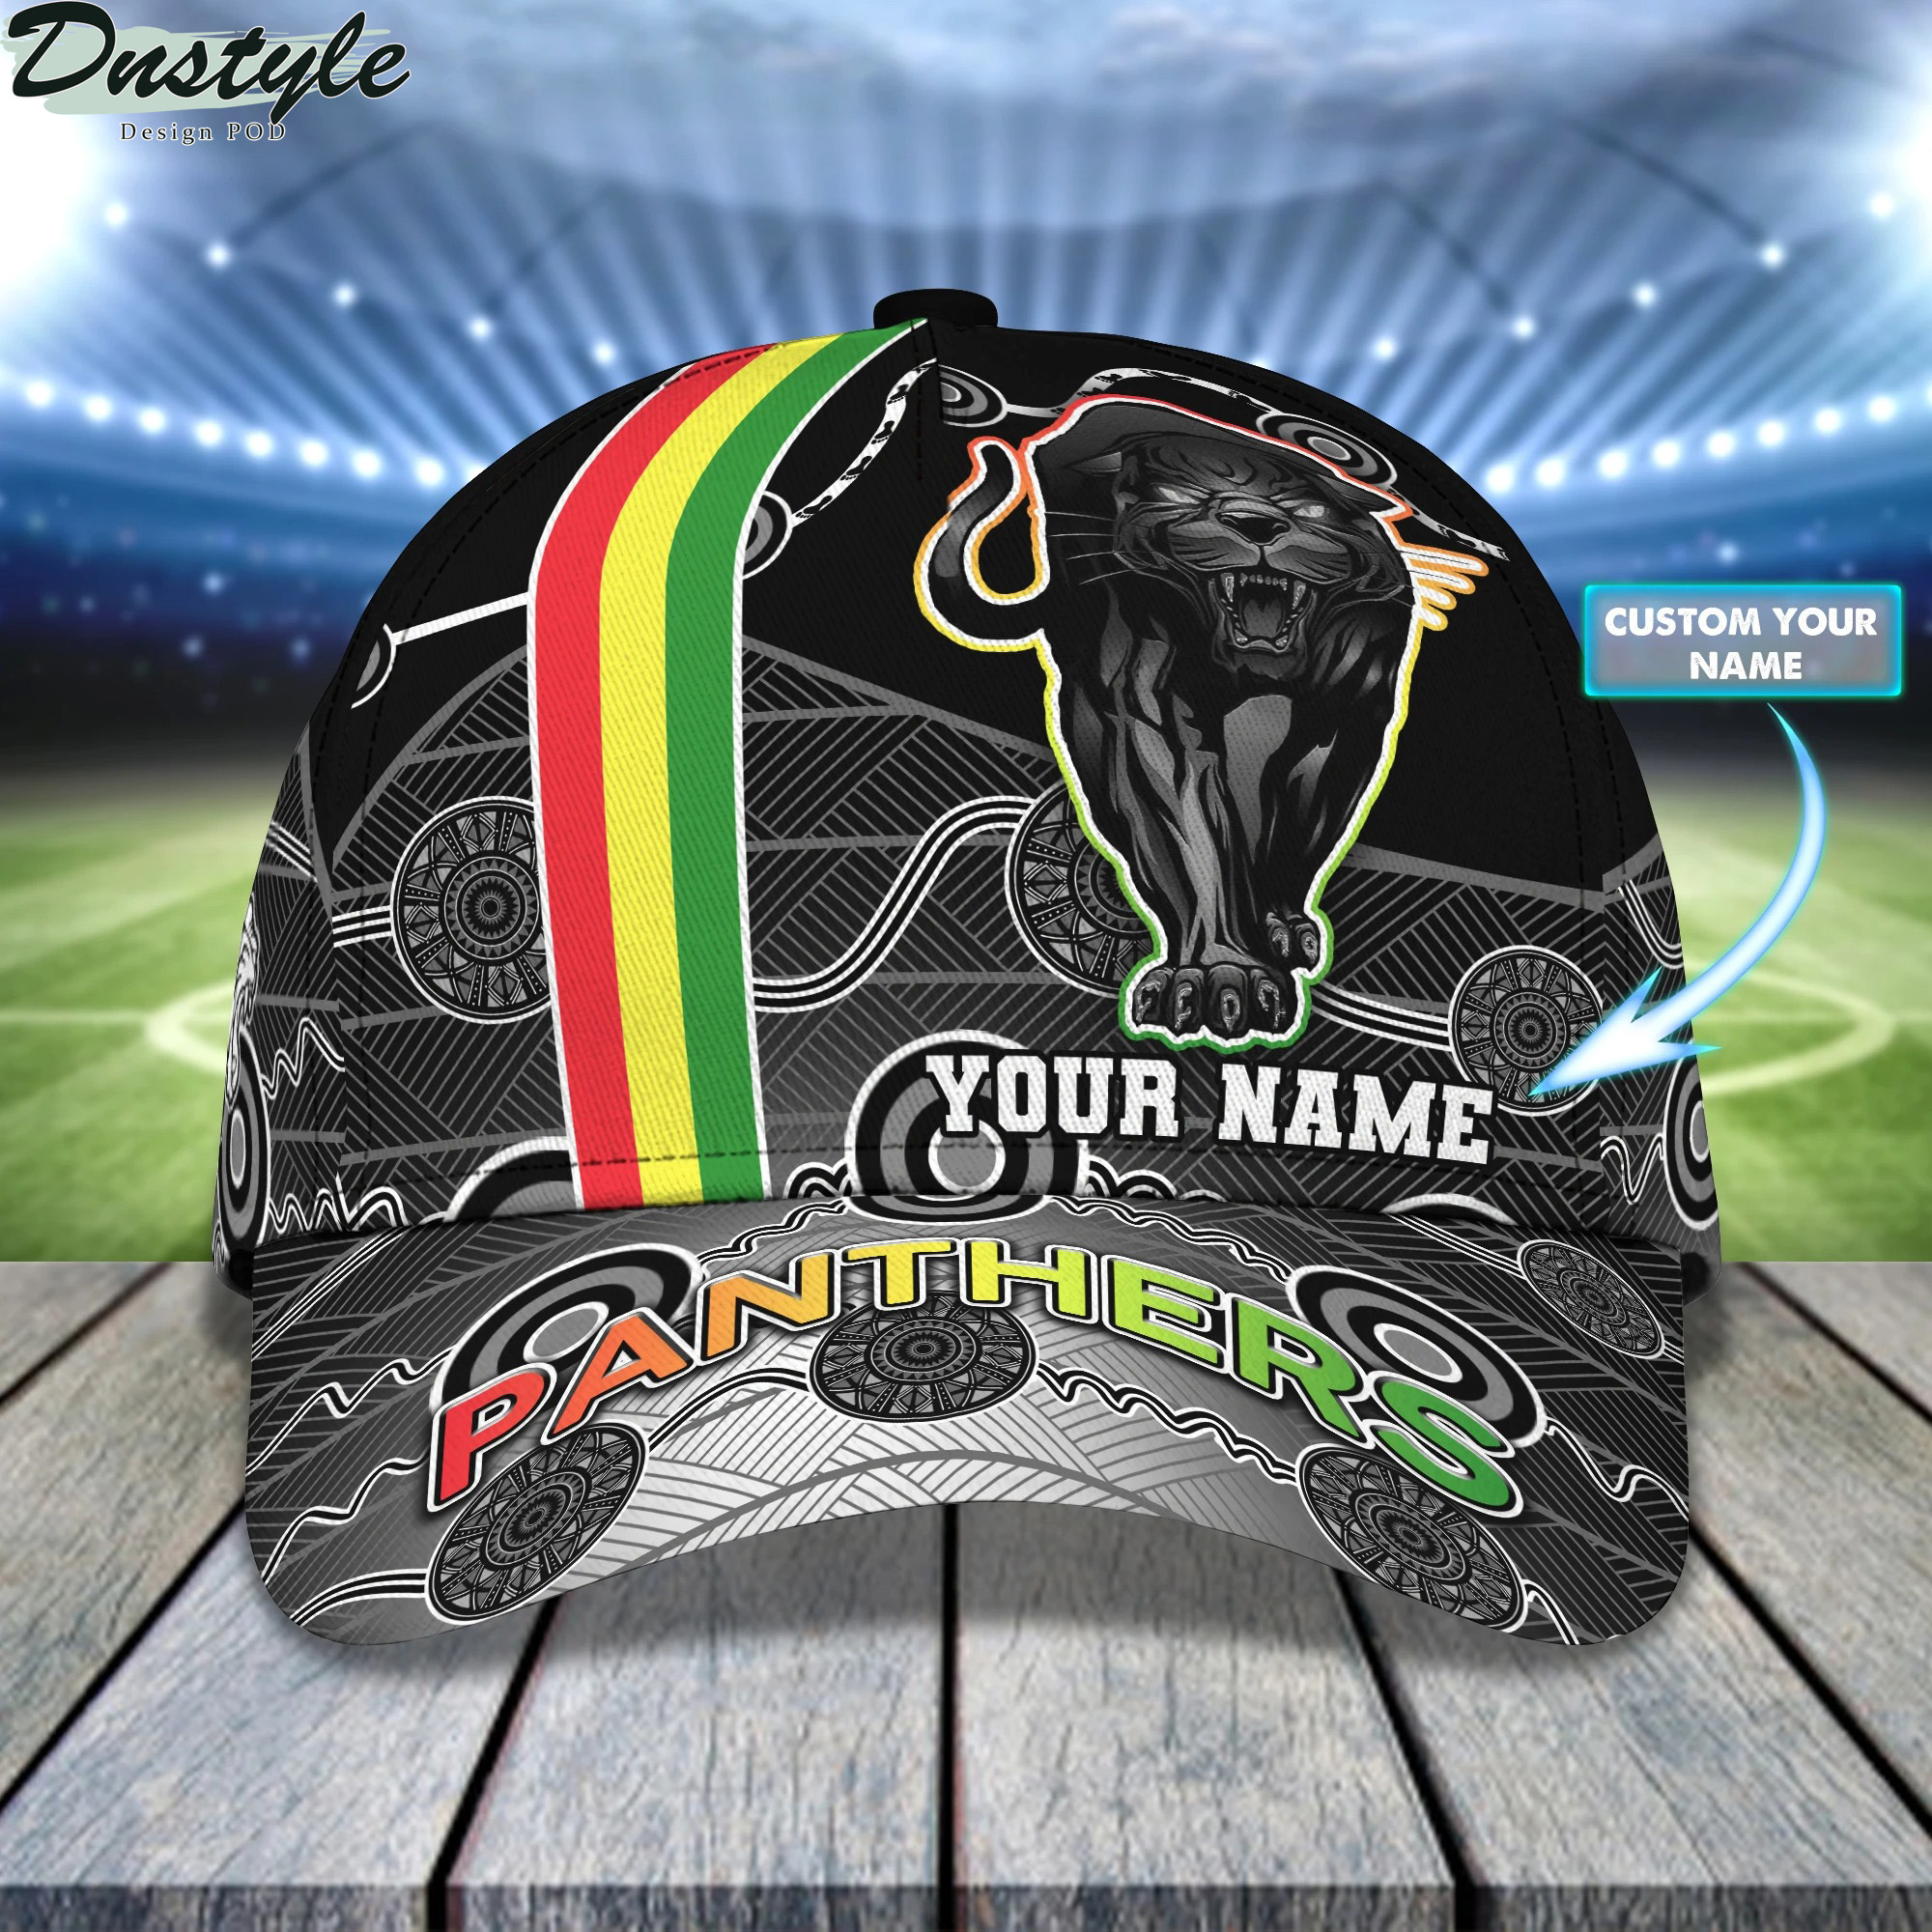 Penrith Panthers Personalized Name Cap